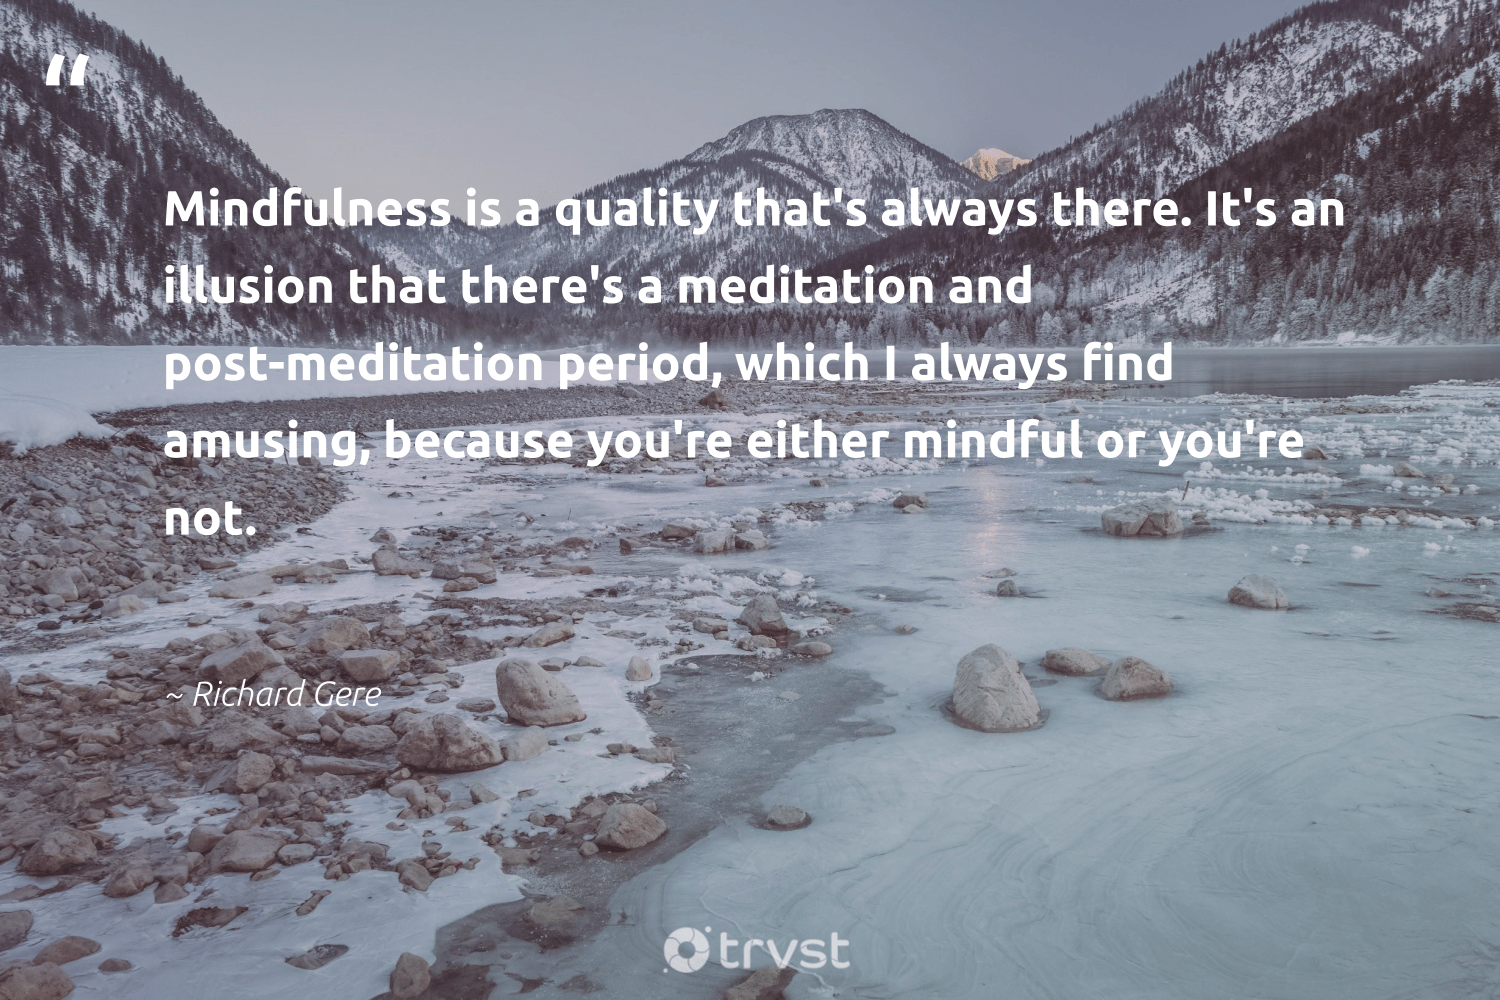 """""""Mindfulness is a quality that's always there. It's an illusion that there's a meditation and post-meditation period, which I always find amusing, because you're either mindful or you're not.""""  - Richard Gere #trvst #quotes #mindfulness #mindful #meditation #growthmindset #mindset #kindness #changemakers #bethechange #creativemindset #entrepreneurmindset"""